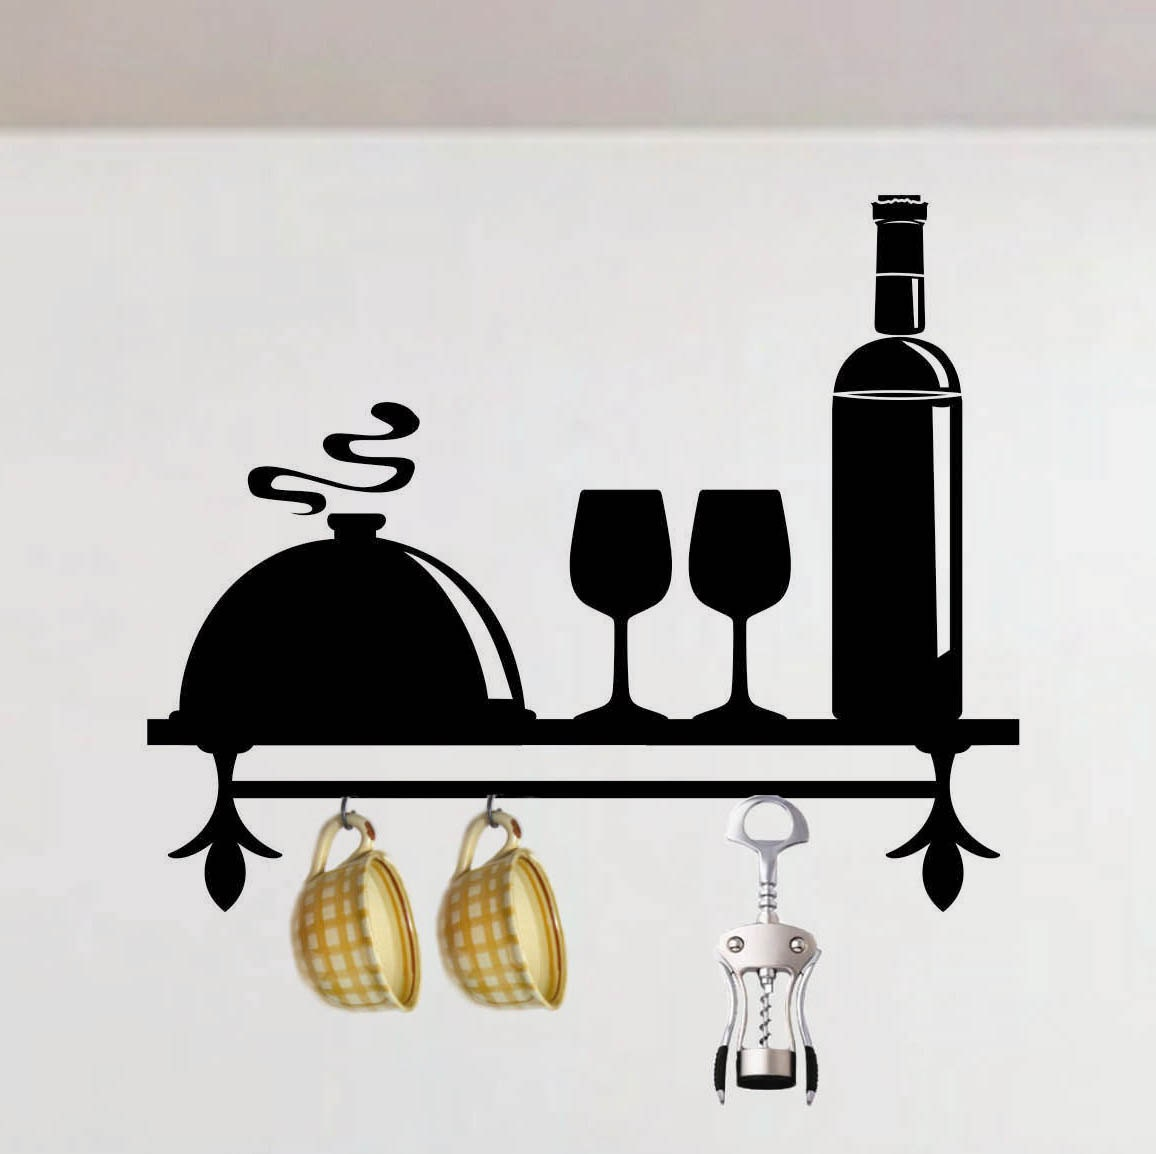 Decorative Wall Shelf For Kitchen : Decorative faux kitchen shelf decal vinyl wall by